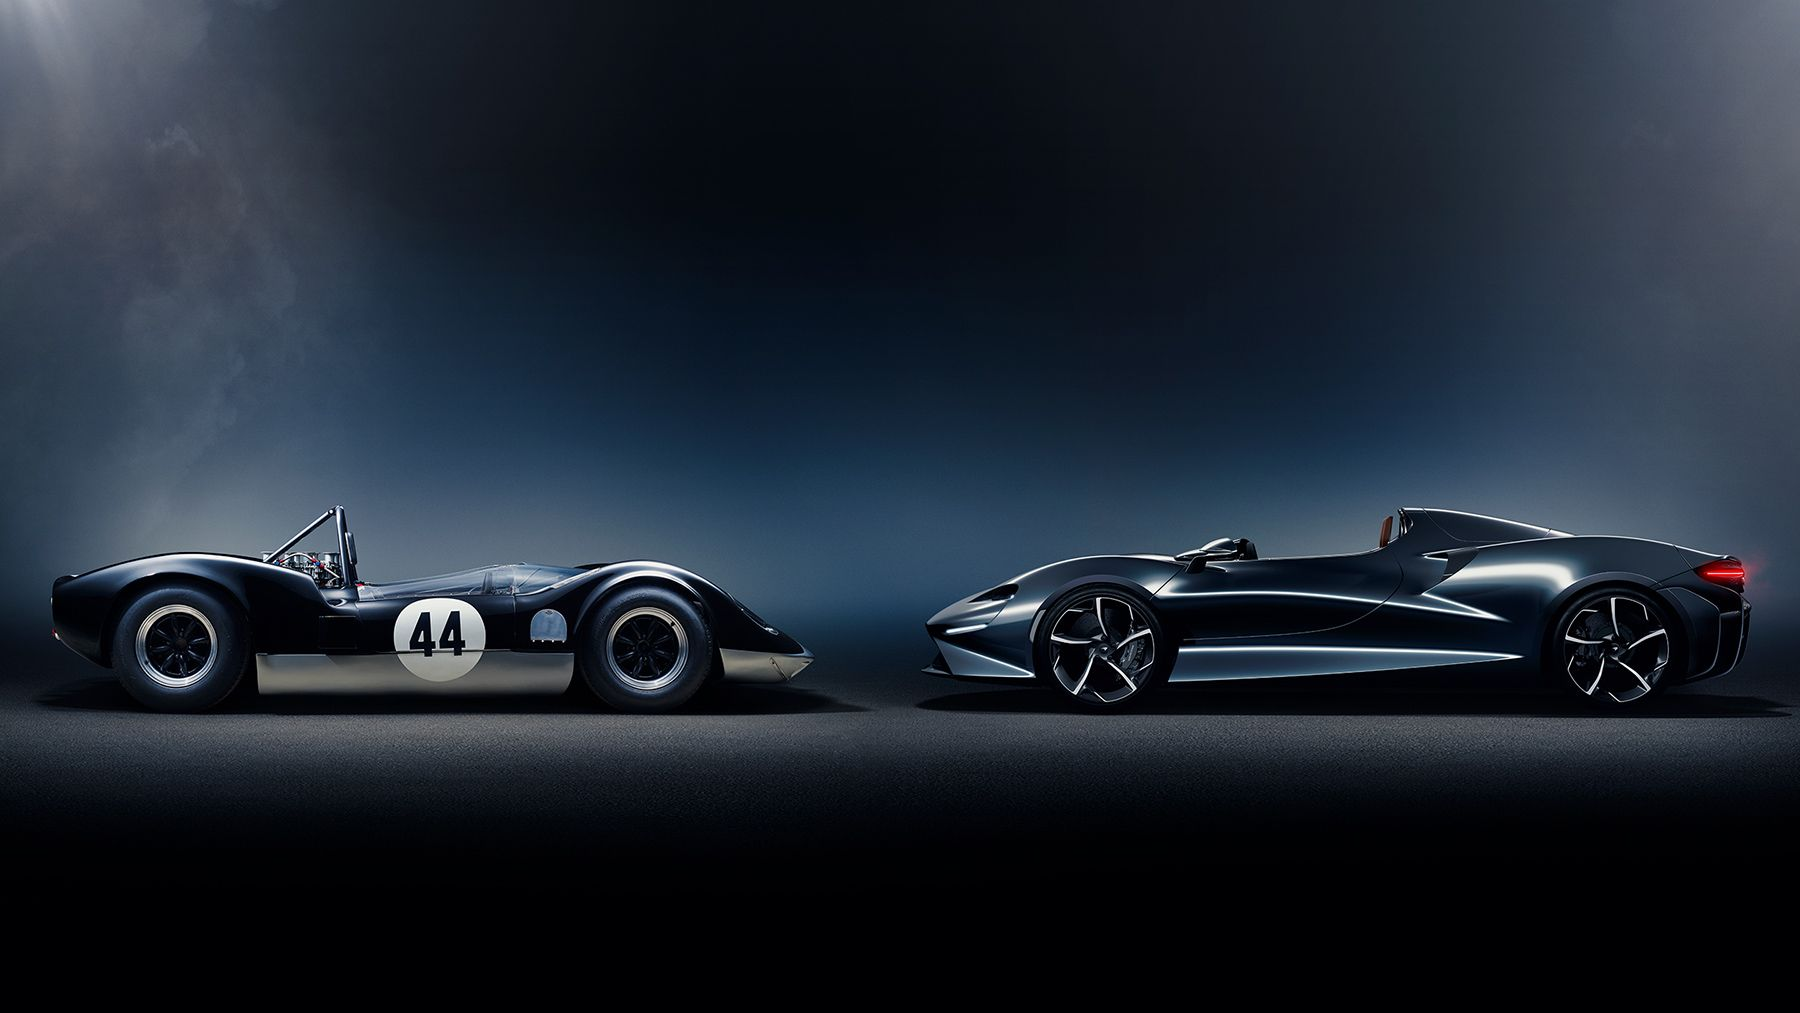 The McLaren Elva is an 804-hp road-legal homage to the glory days